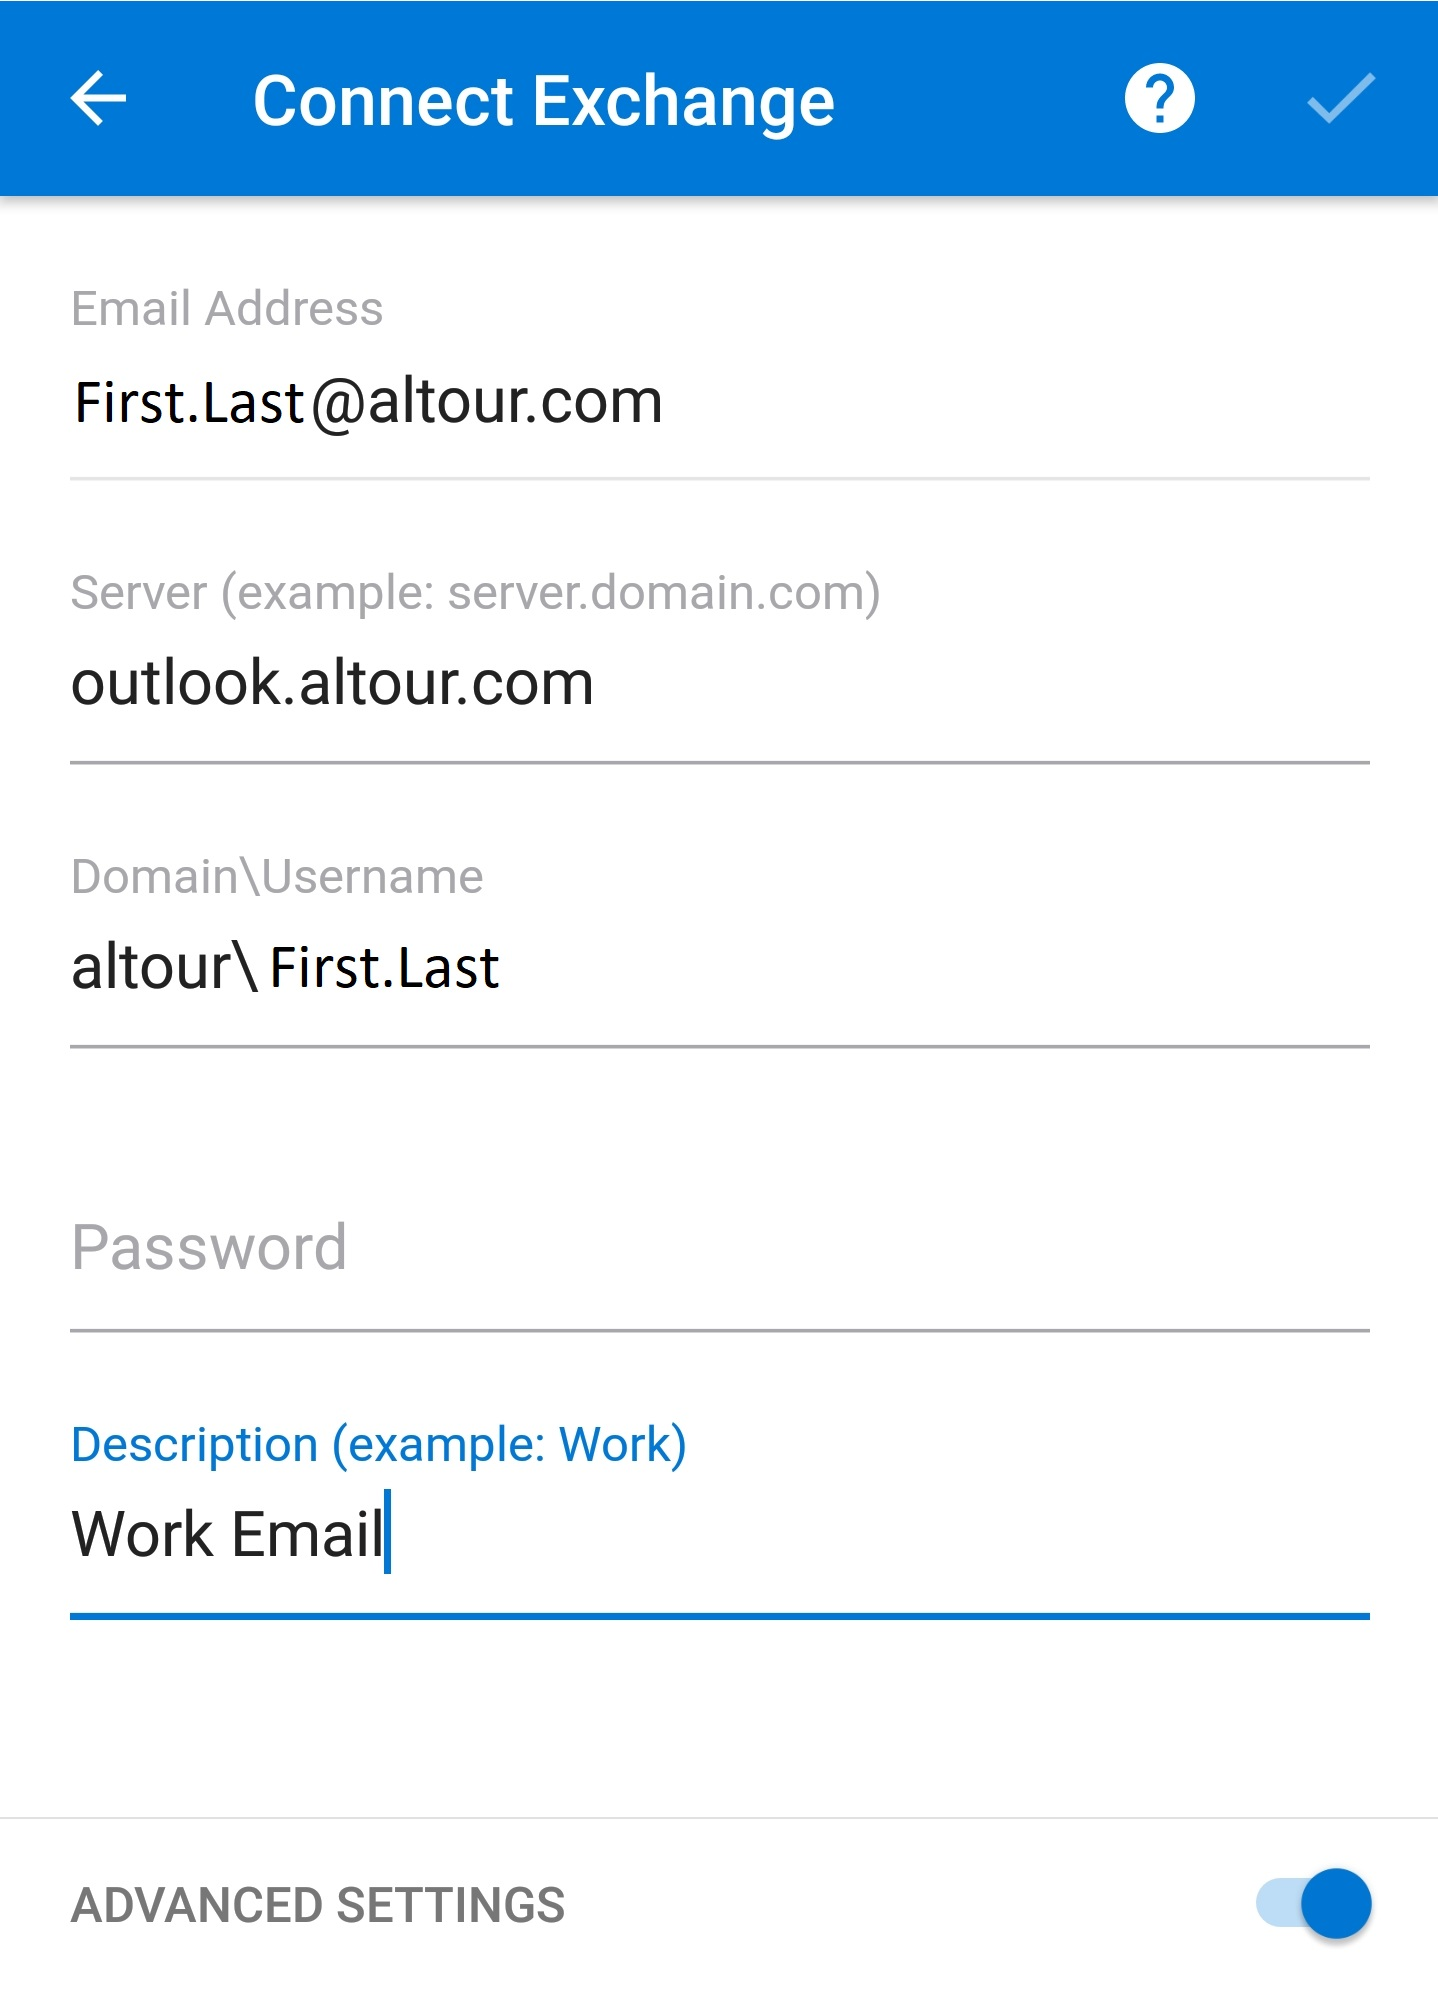 ALTOUR Email On Outlook App For Android : ALTOUR Helpdesk